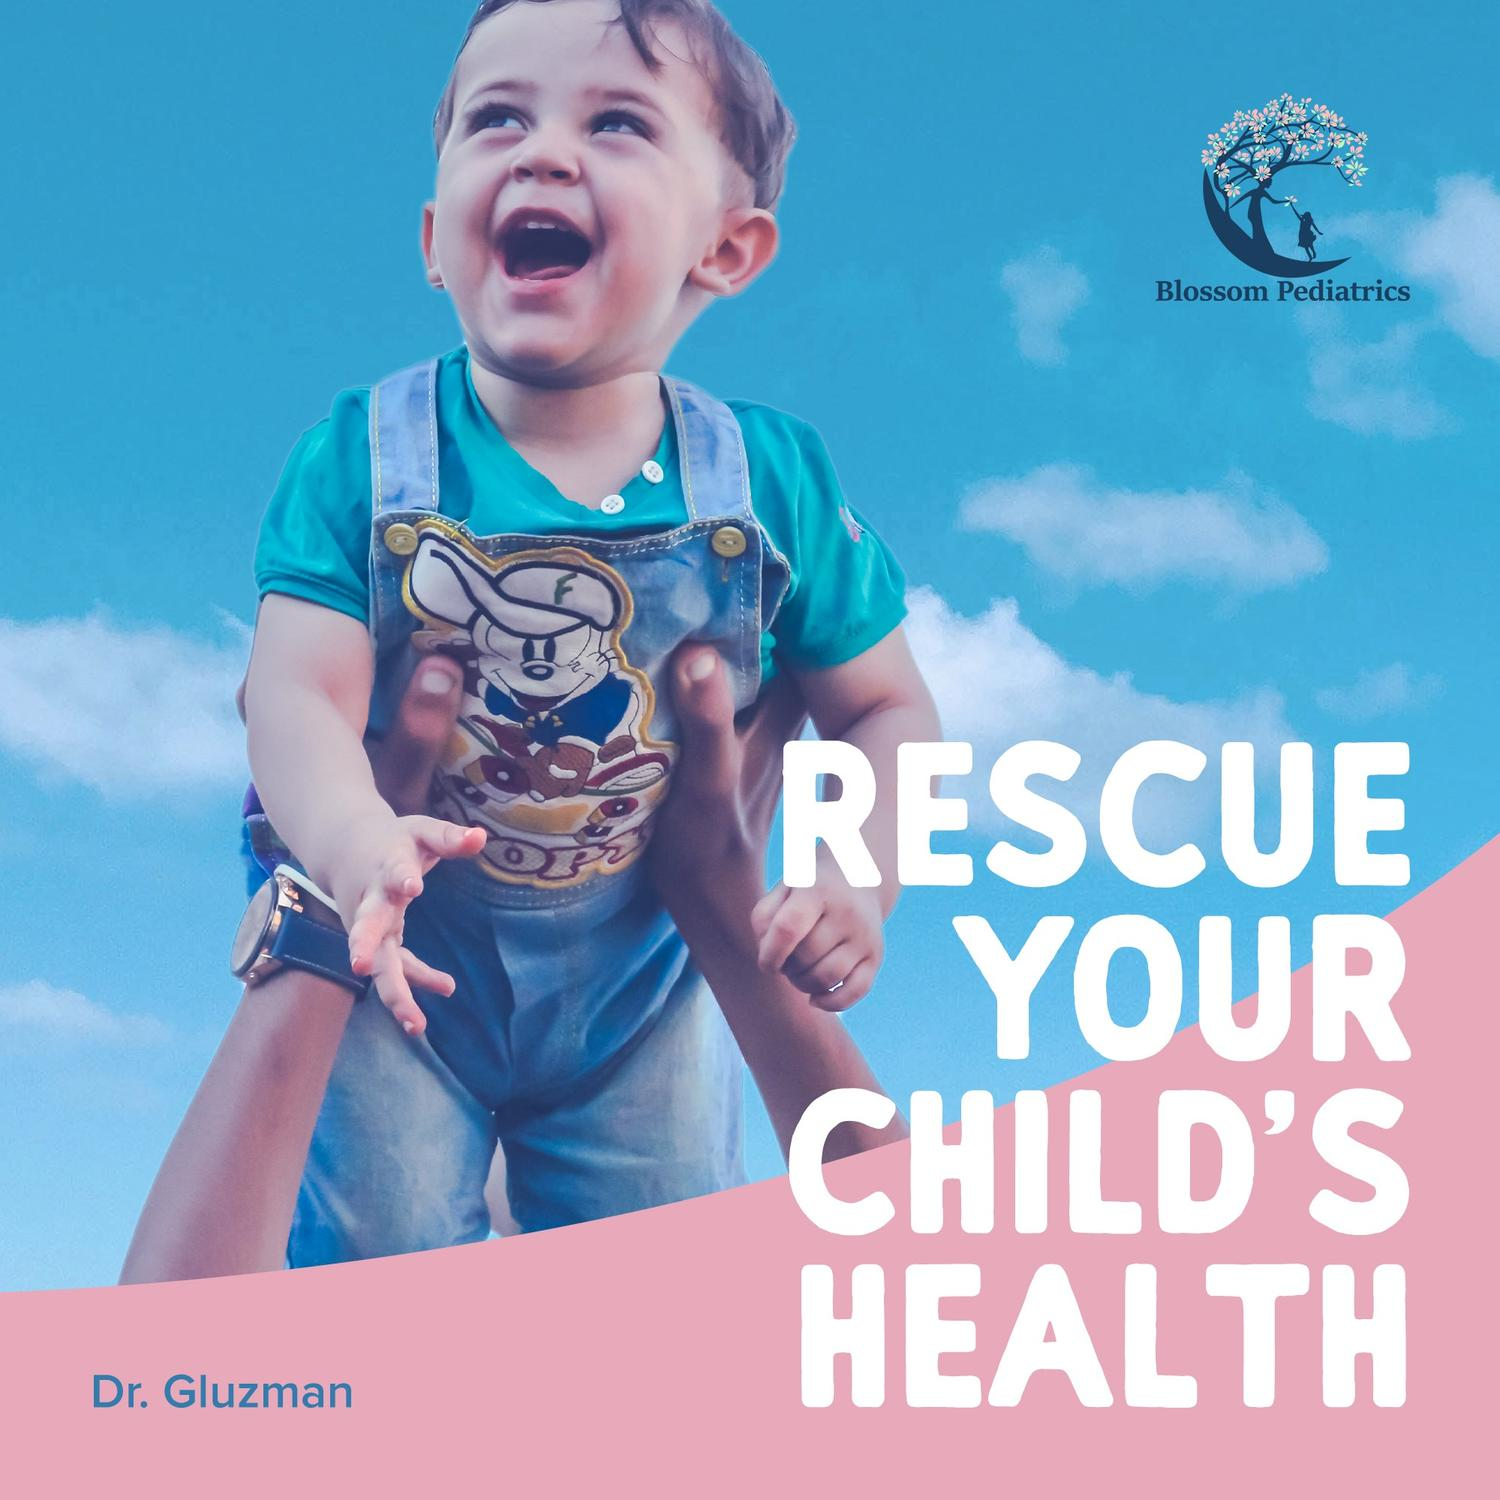 Rescue your child's health